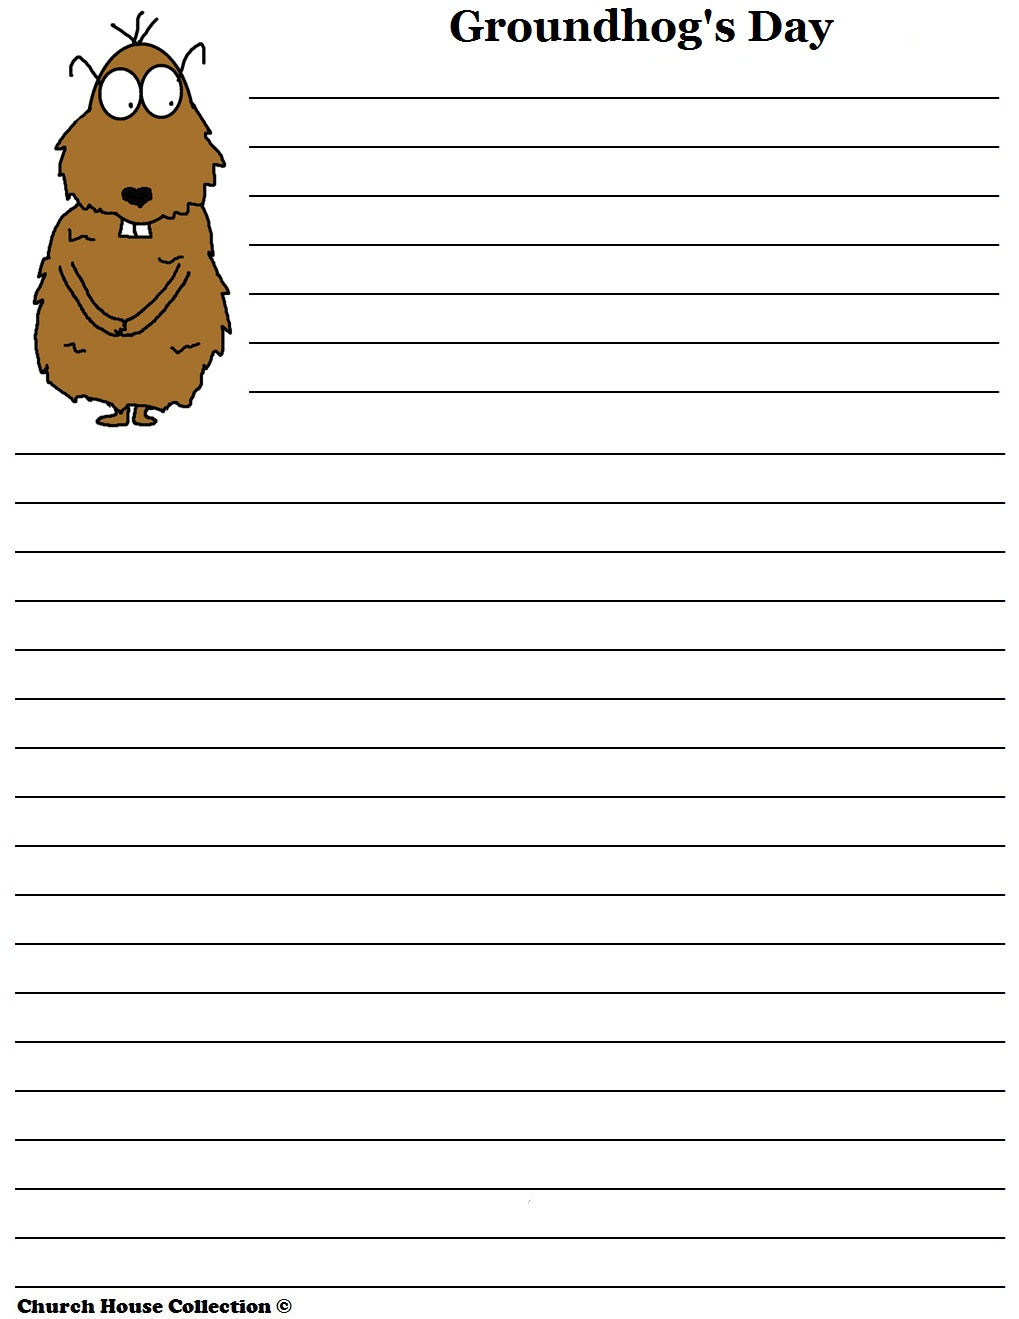 groundhog day writing paper Groundhog cut and paste paper craft with predictions worksheet or writing paper.